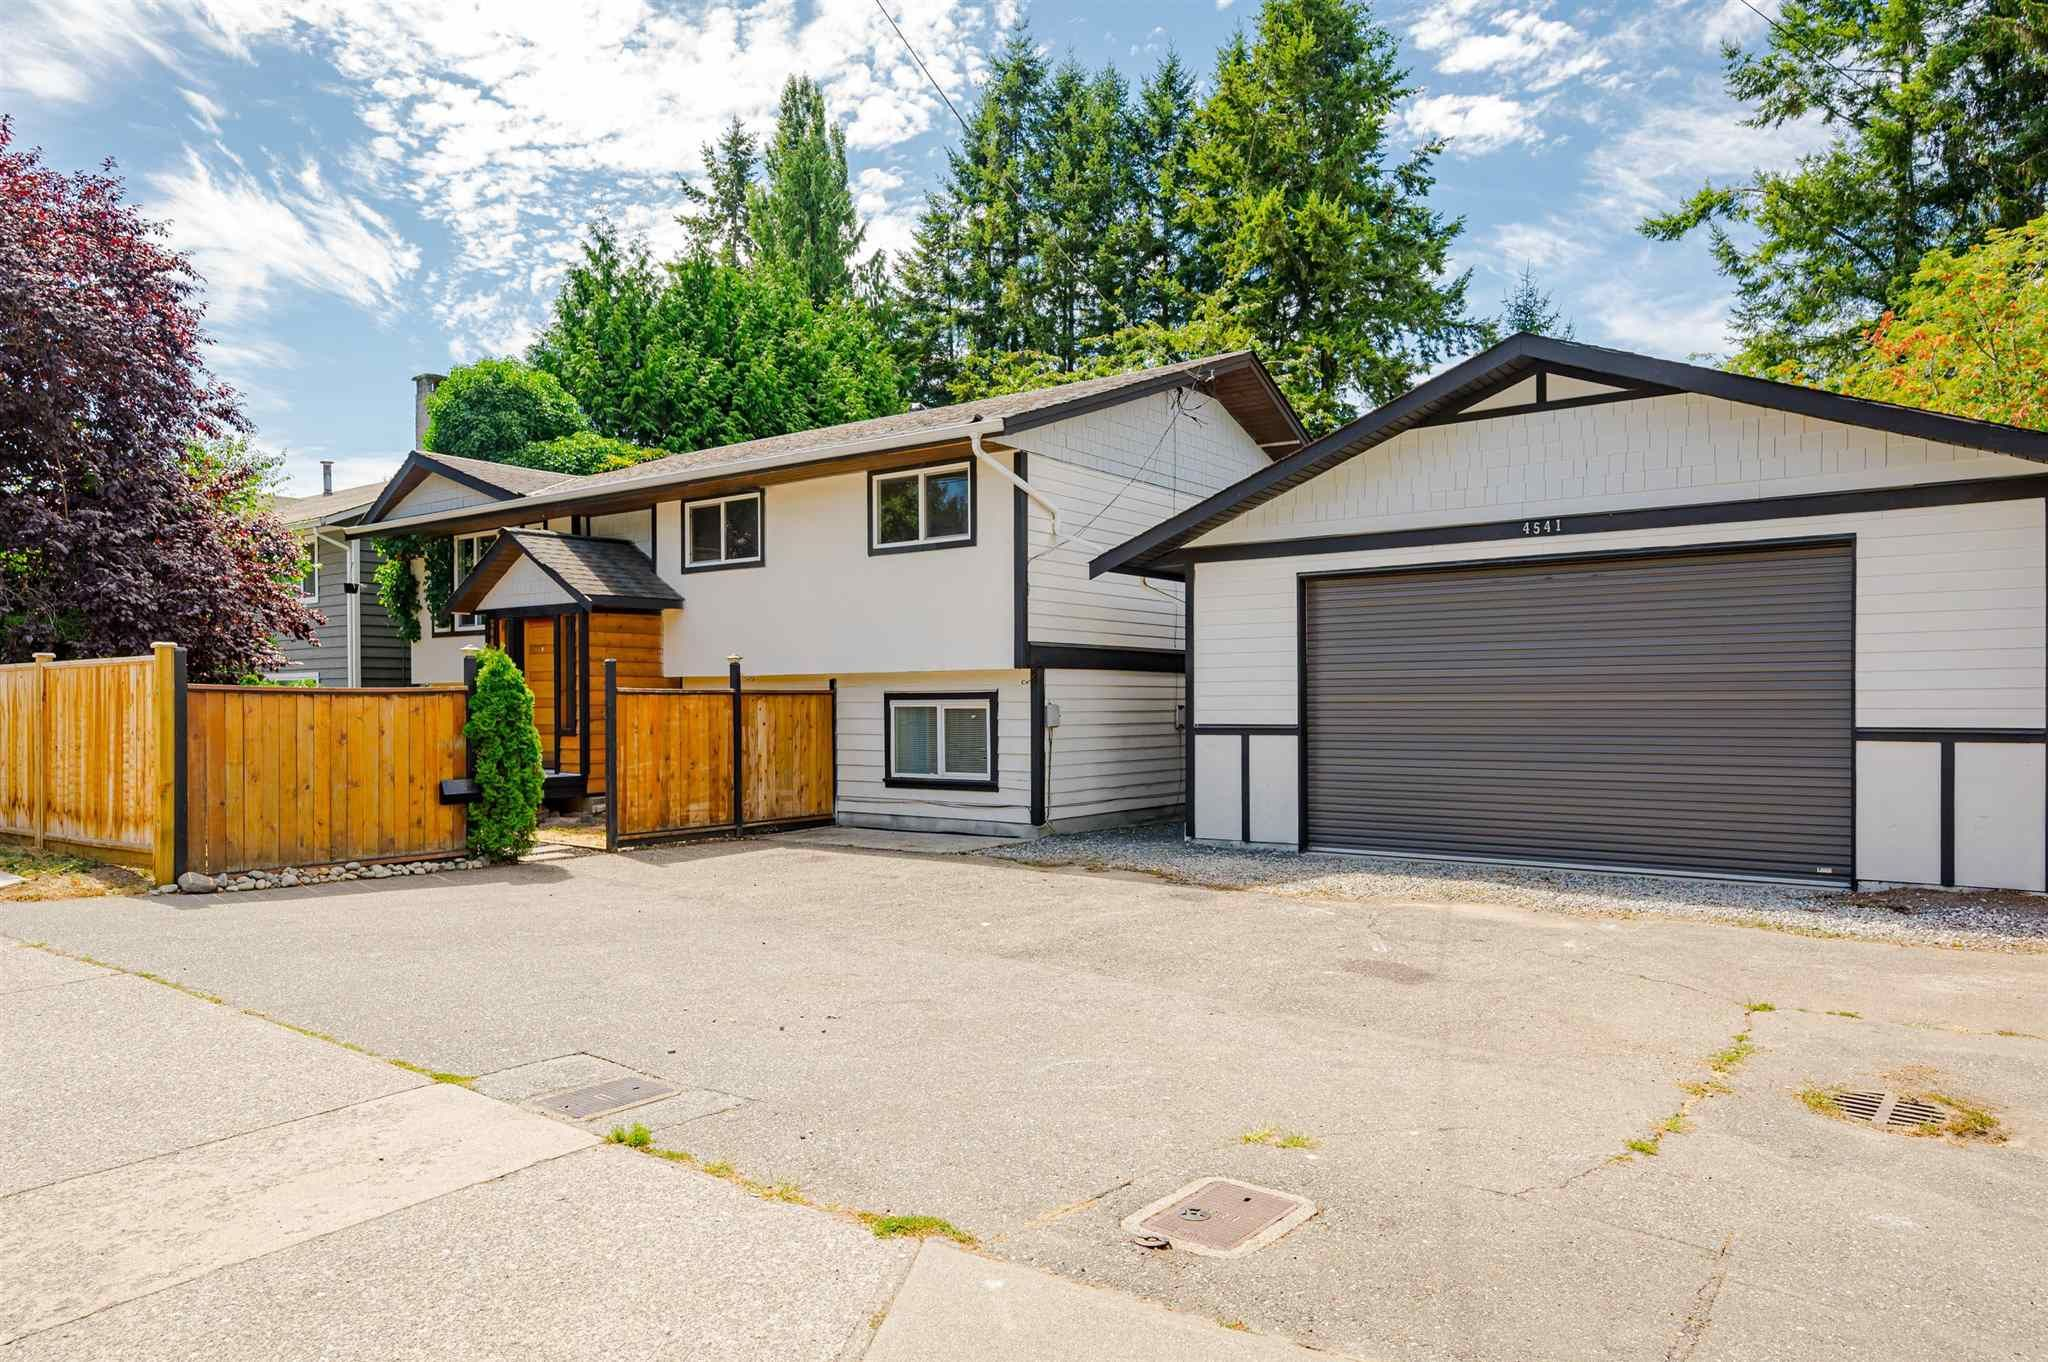 Main Photo: 4541 208 Street in Langley: Langley City House for sale : MLS®# R2607739